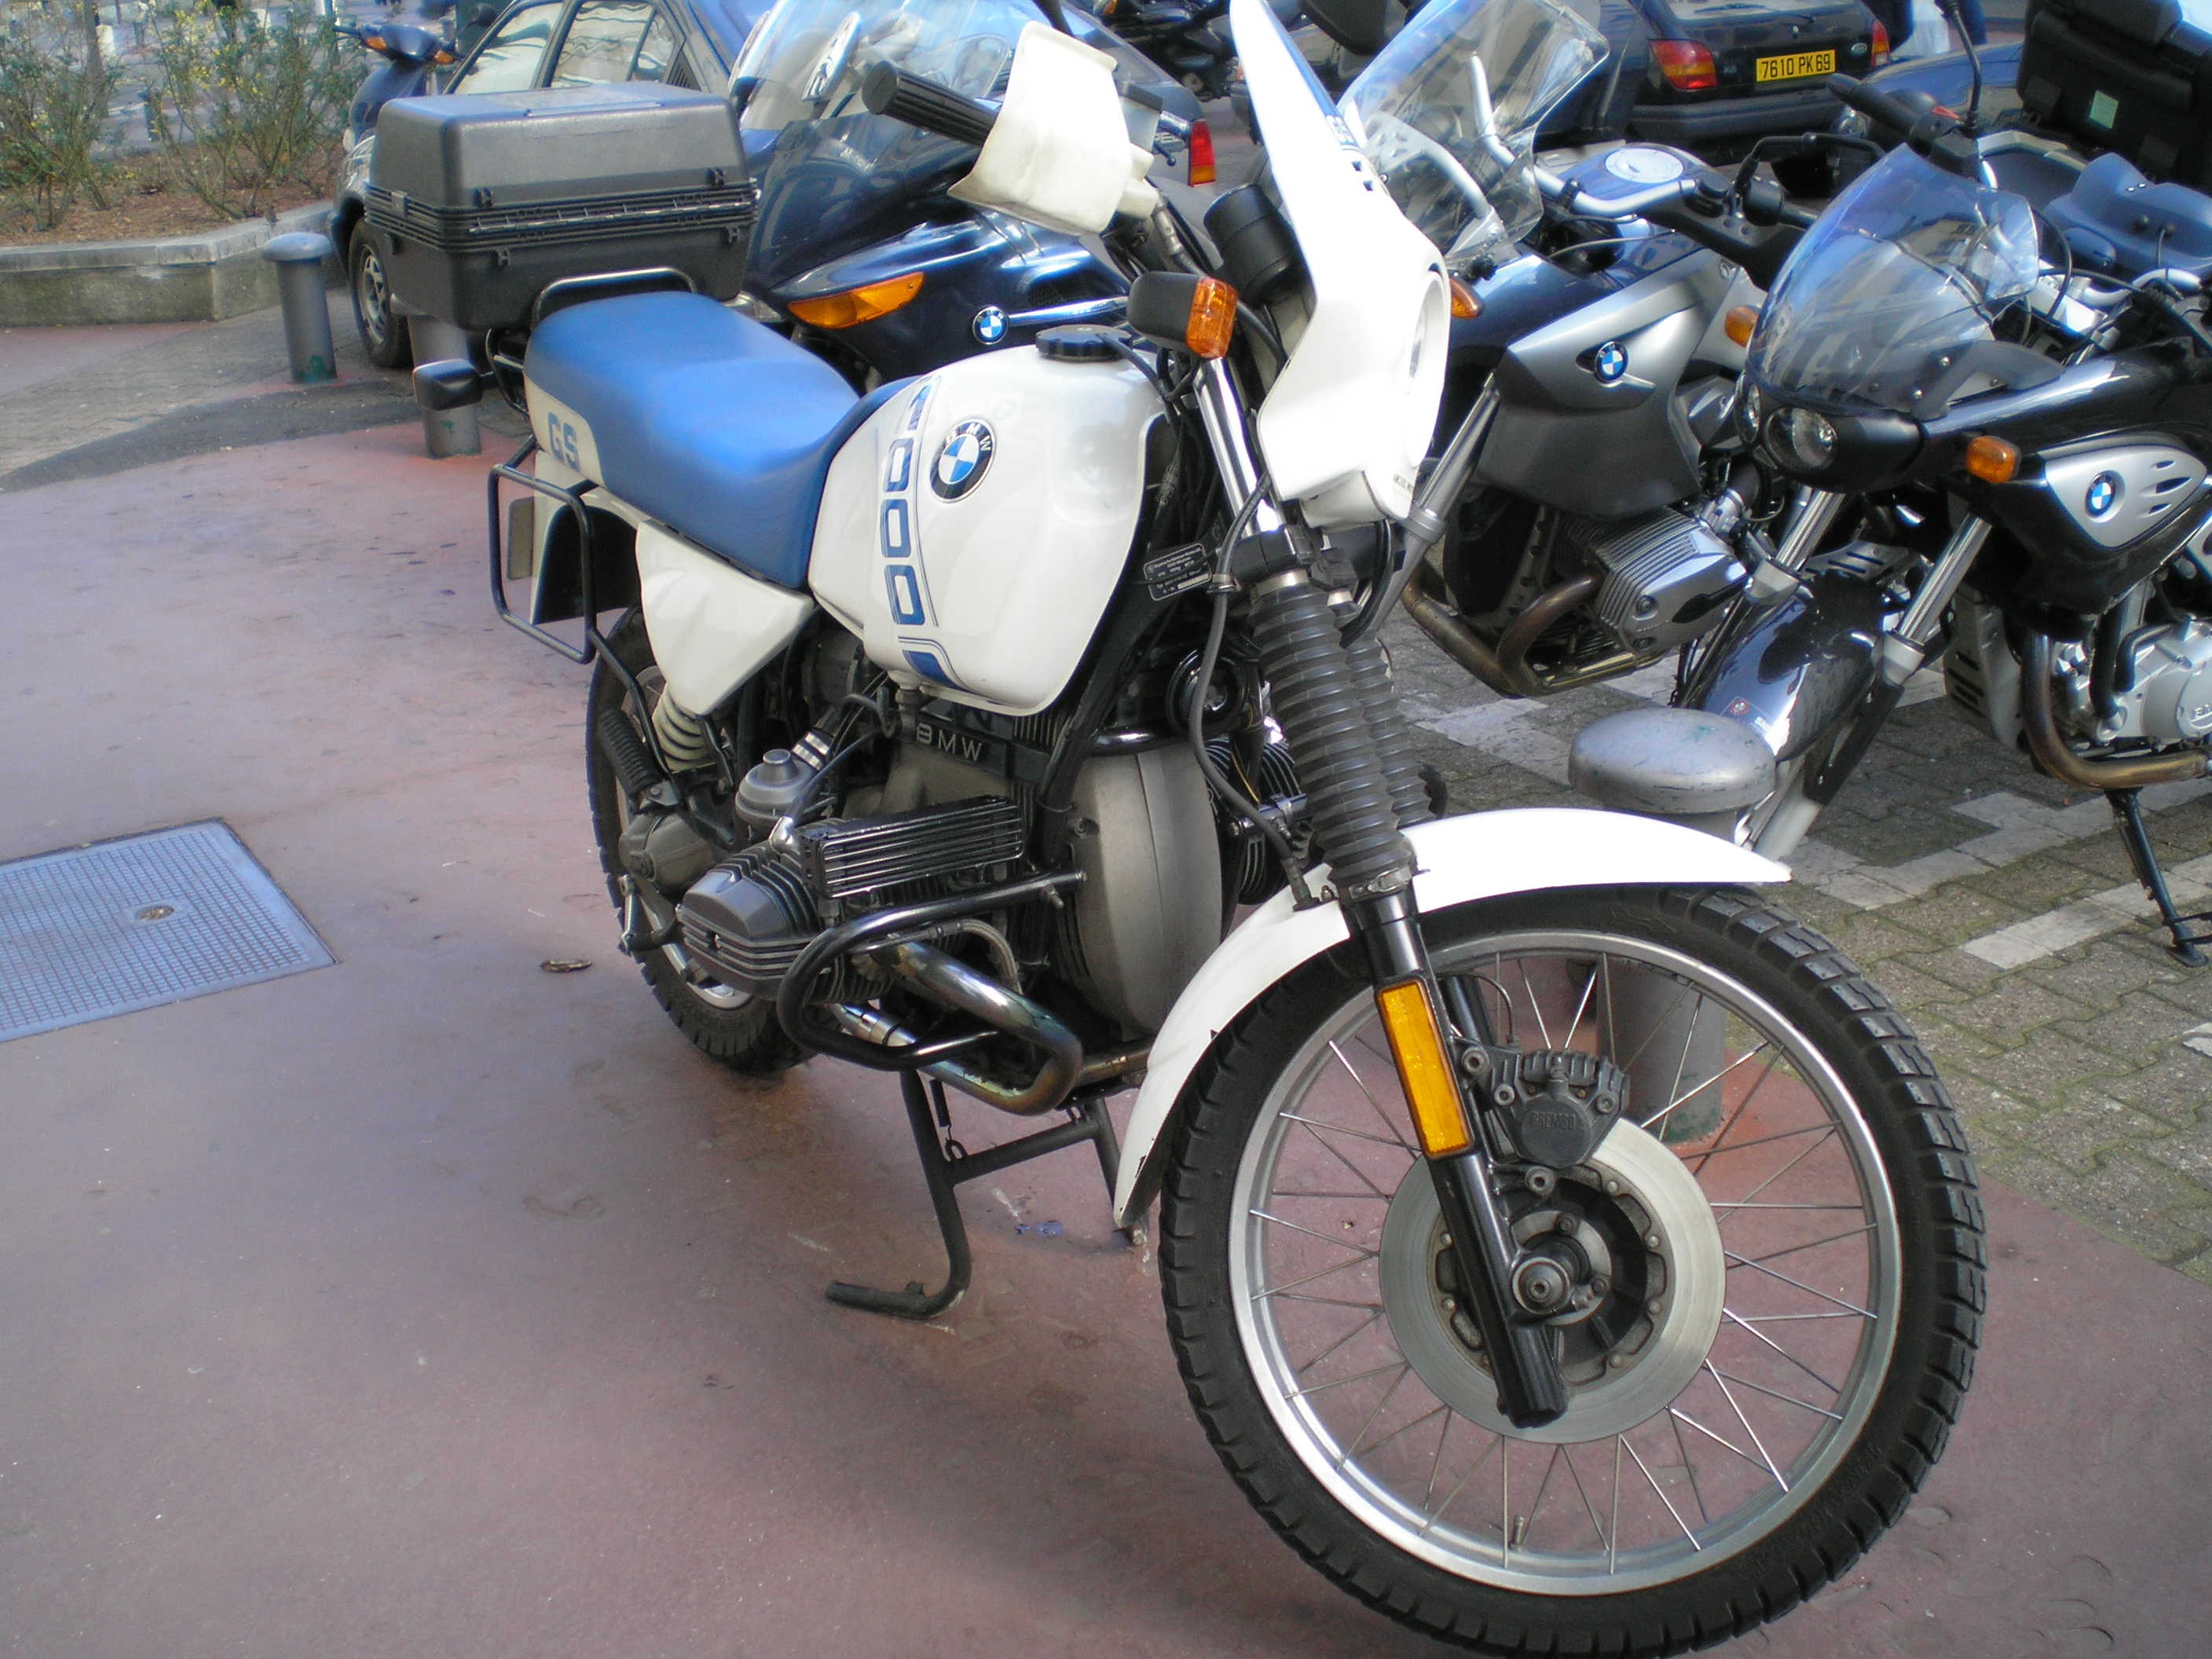 BMW R80GS 1989 images #6017